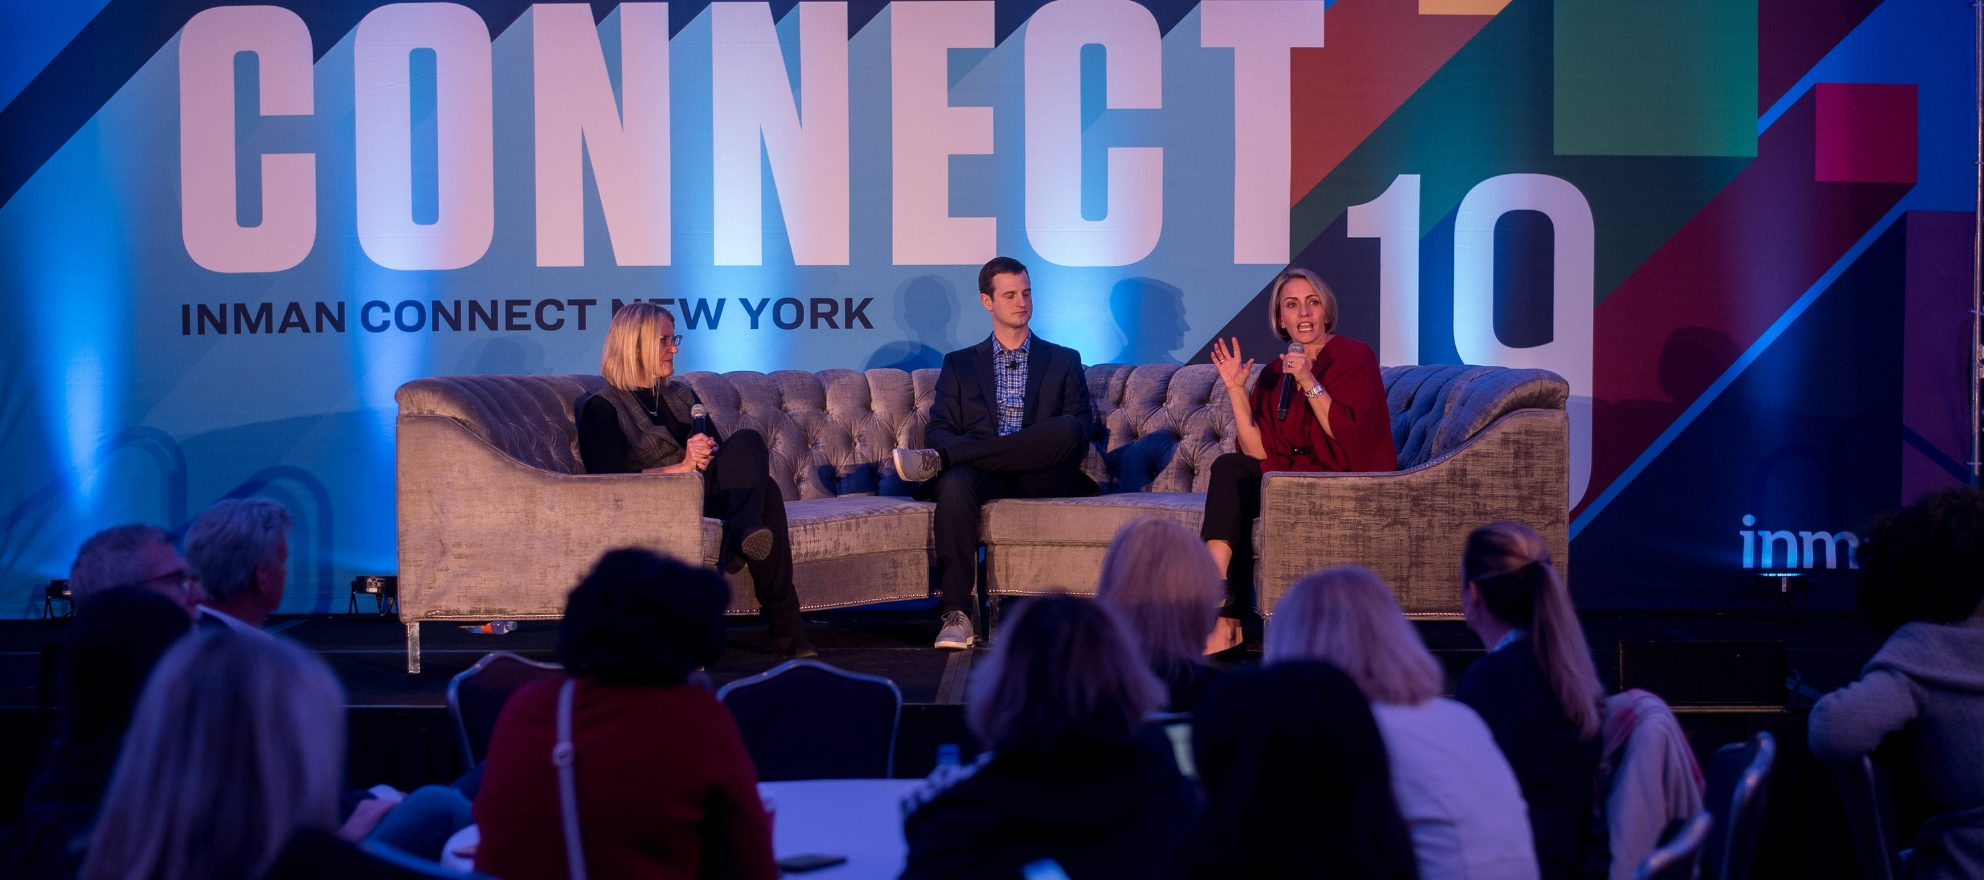 WATCH: What we learned at Indie Connect